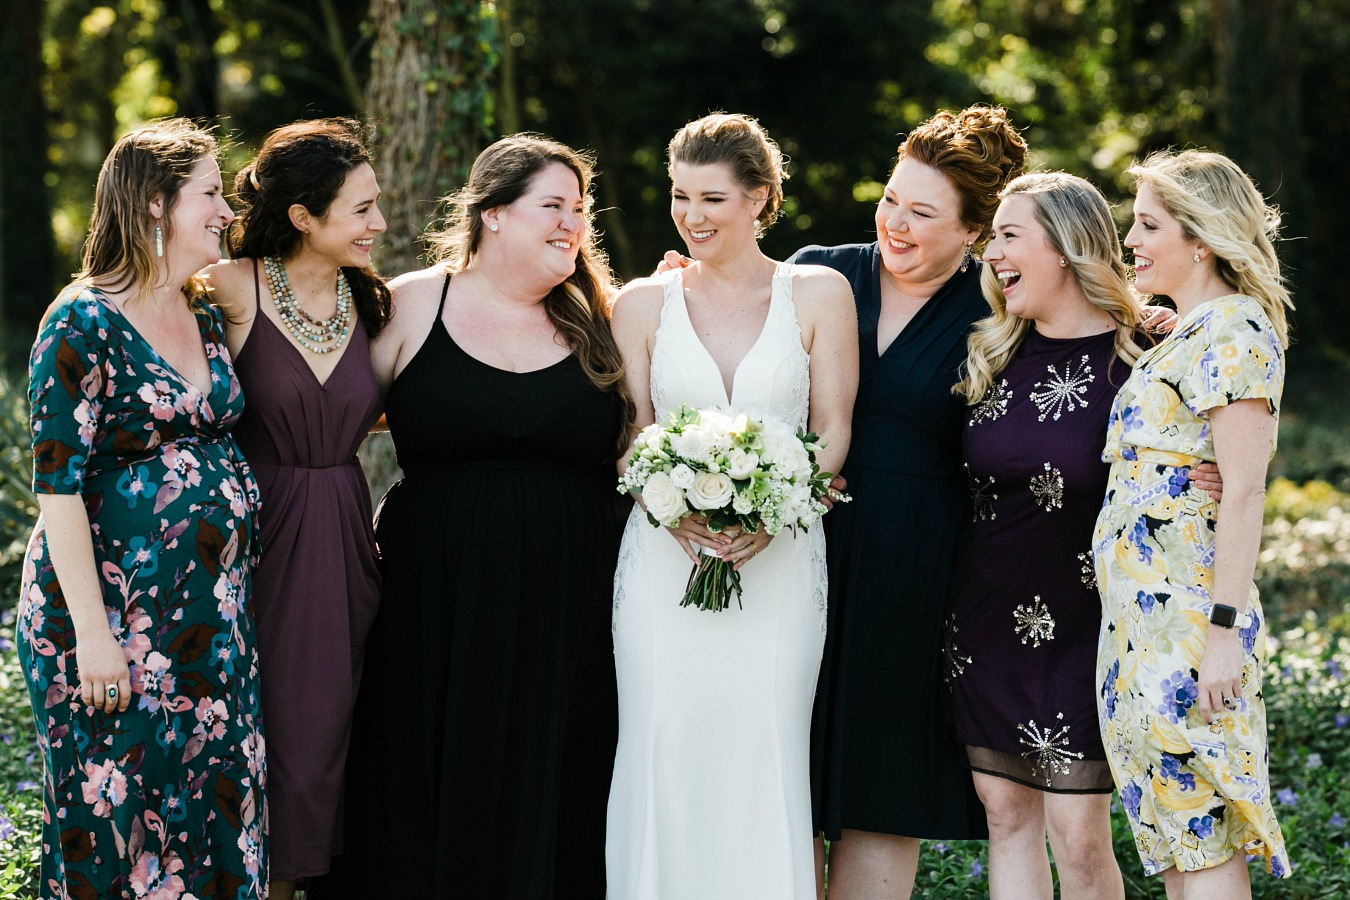 2020 Wedding Trends: No Bridesmaids